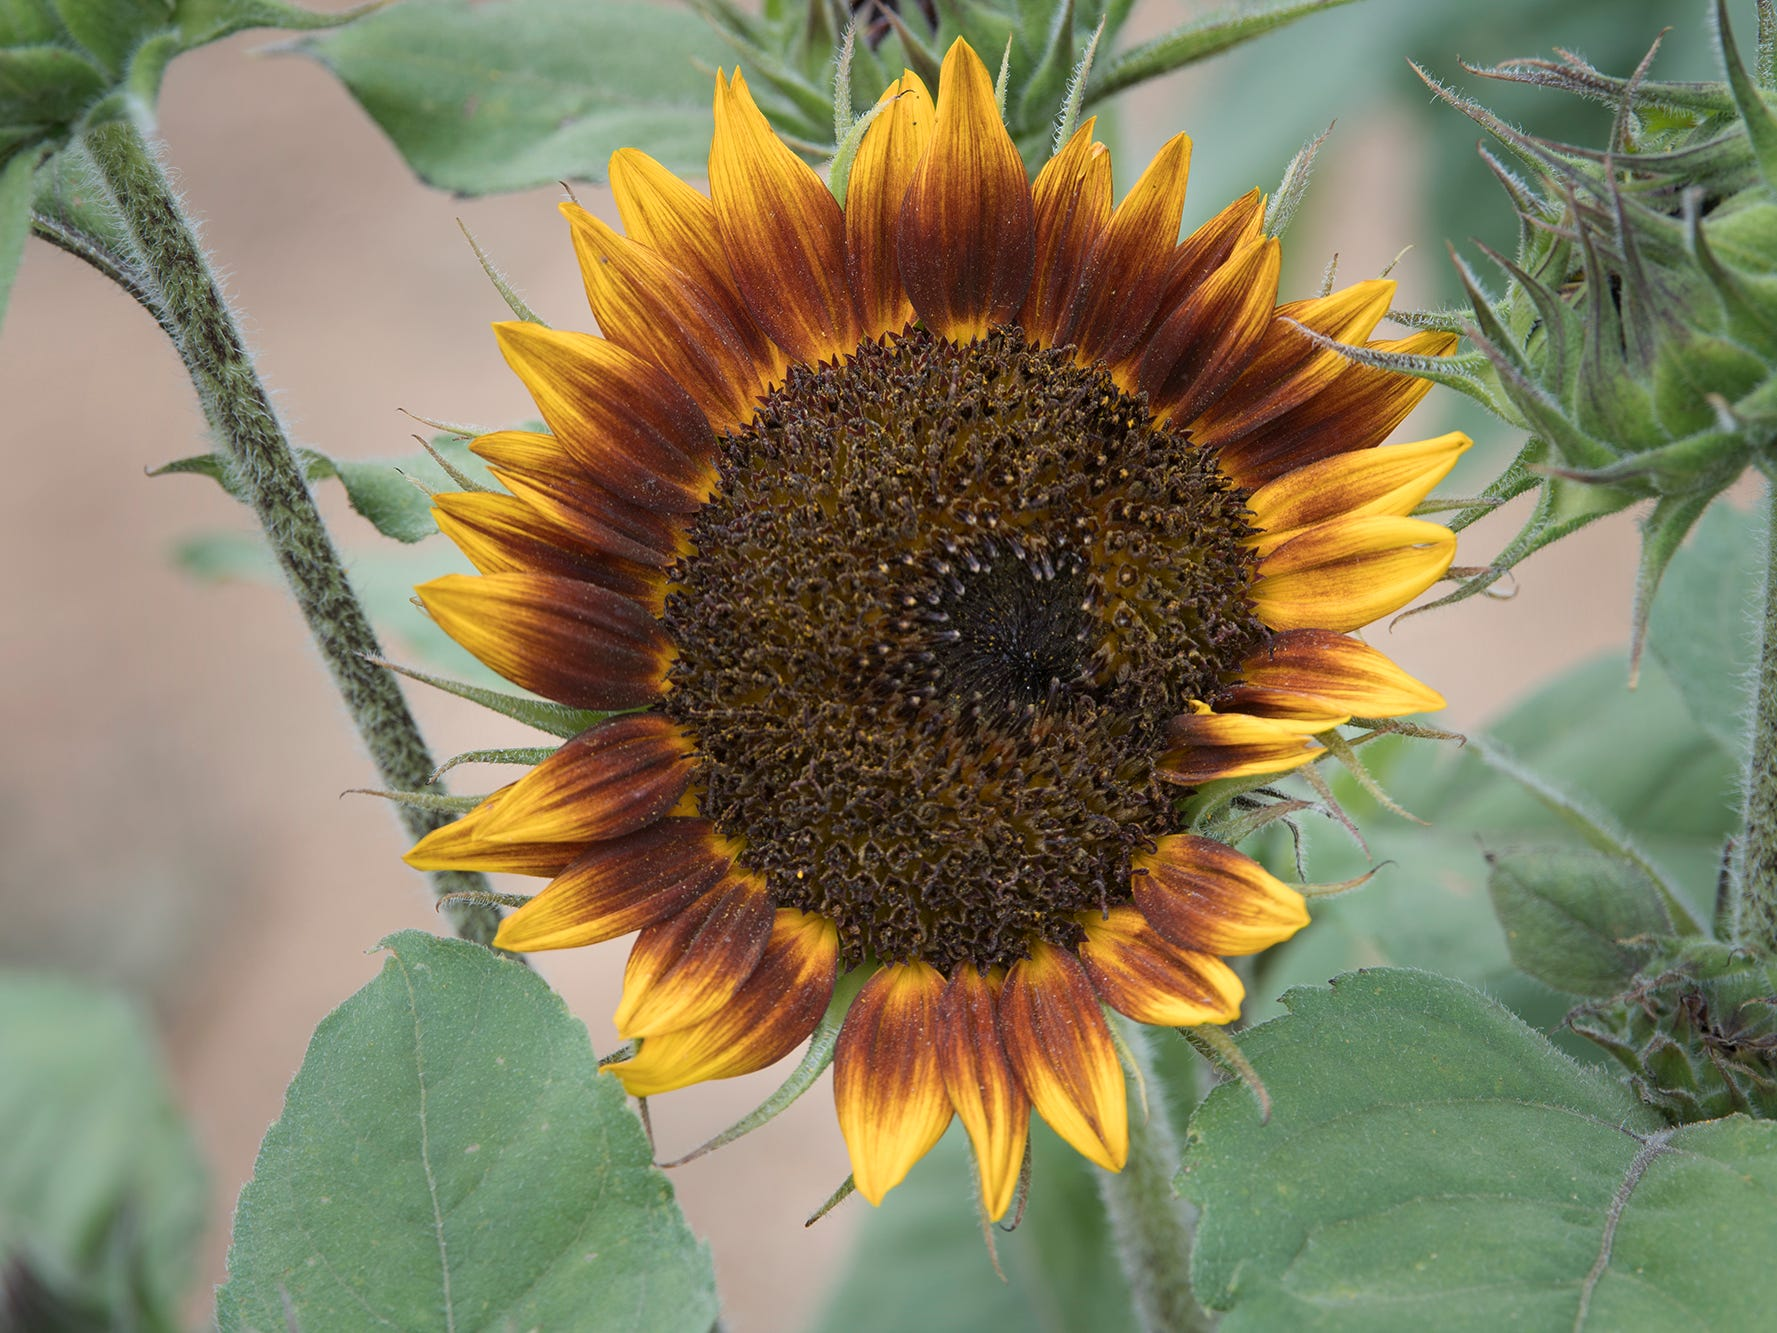 A sunflower during the 2nd Annual Sunflower Festival at Maple Lawn Farms near New Park.